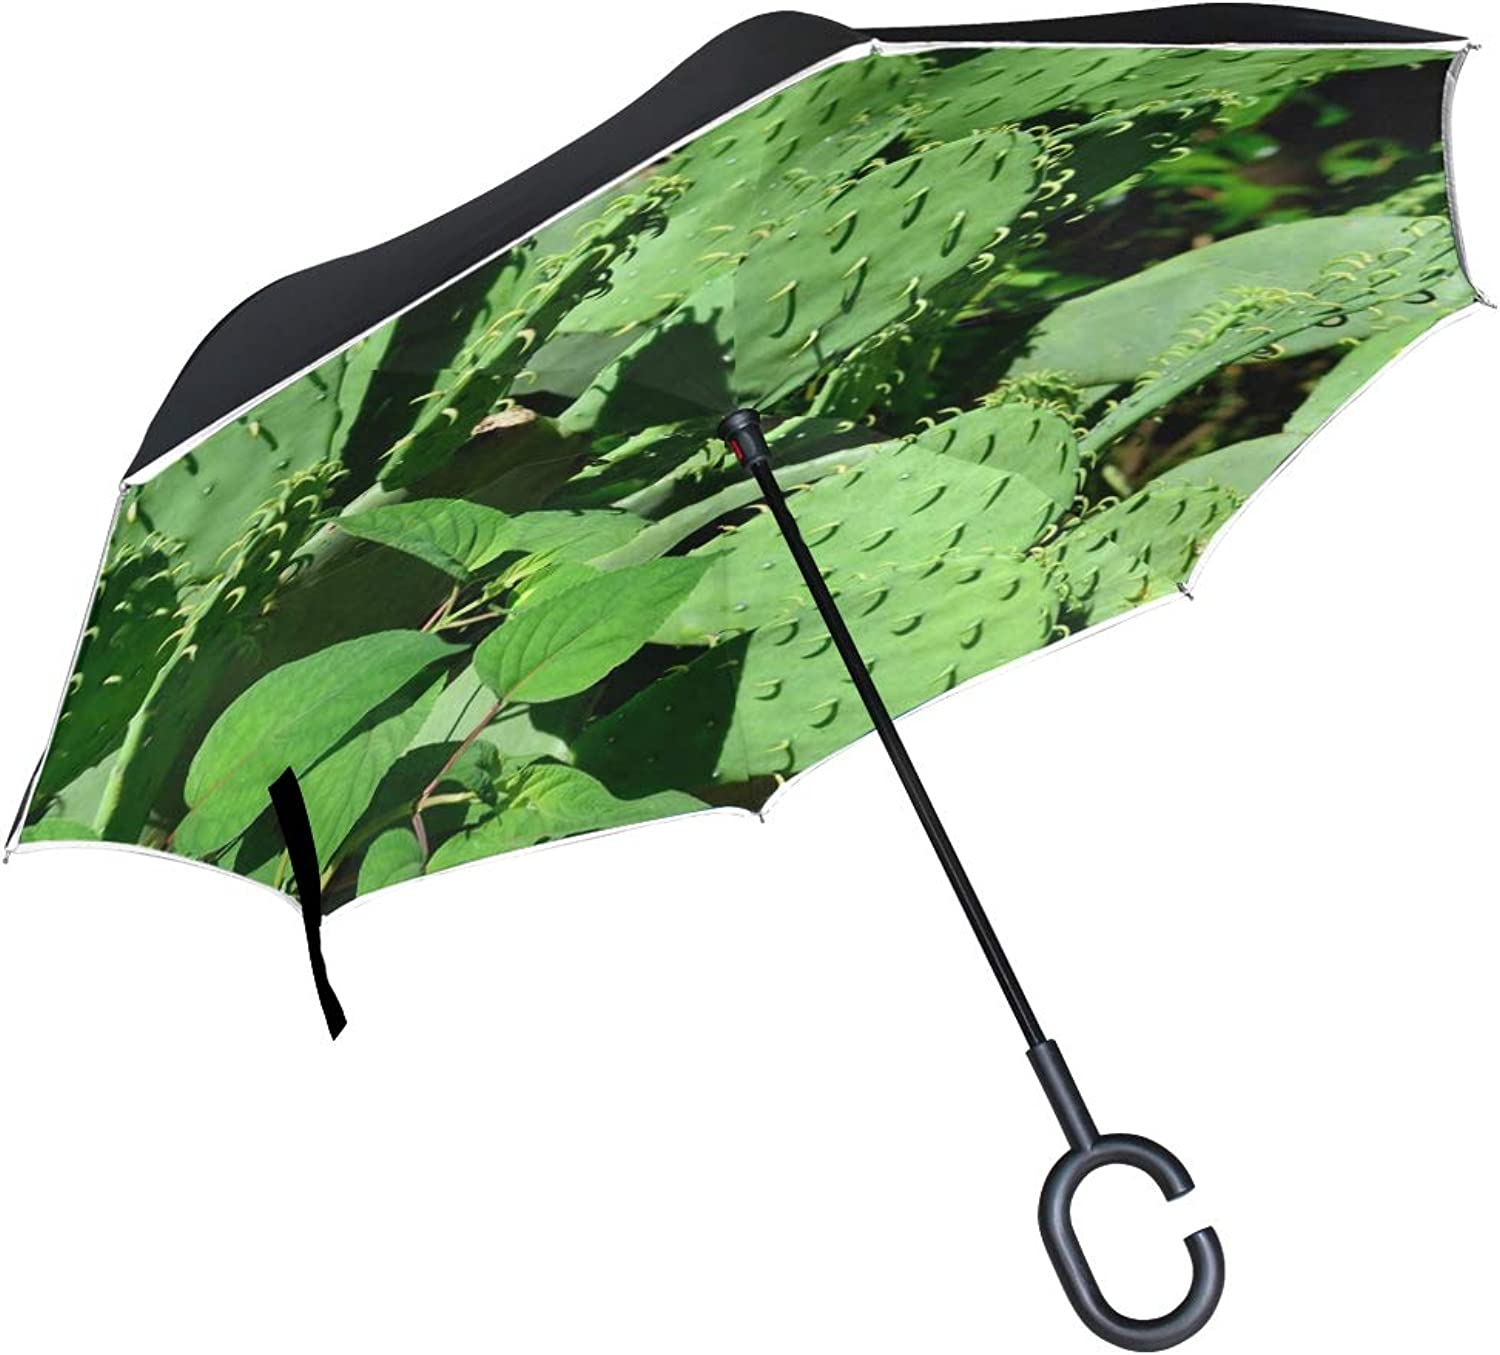 Double Layer Ingreened Cactus Plant Cactus Plant Green Nature Desert Umbrellas Reverse Folding Umbrella Windproof Uv Predection Big Straight Umbrella for Car Rain Outdoor with CShaped Handle